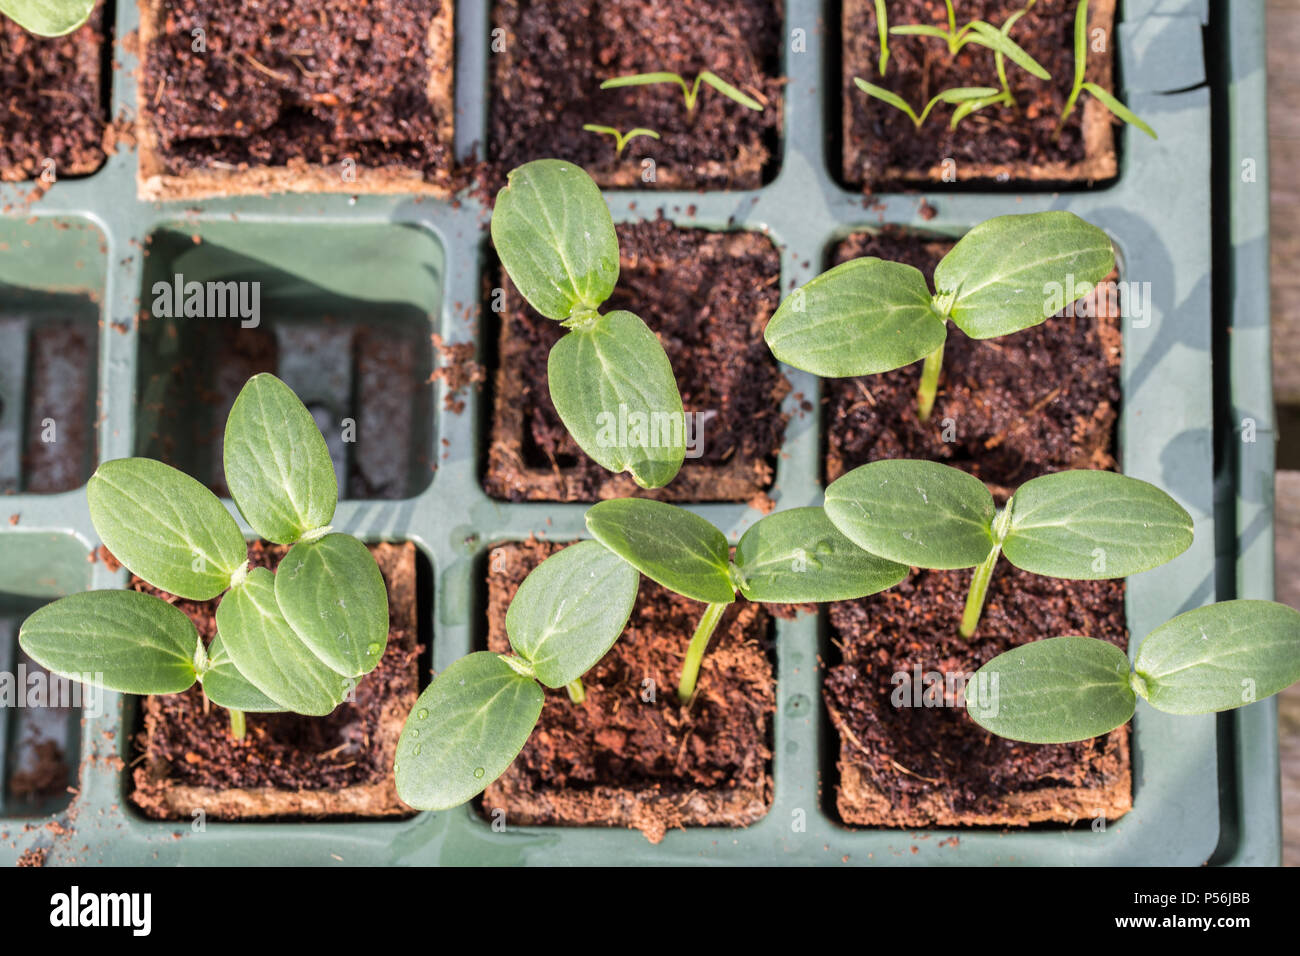 Young Komkommer or cucumber plants in a breeding tray - Stock Image